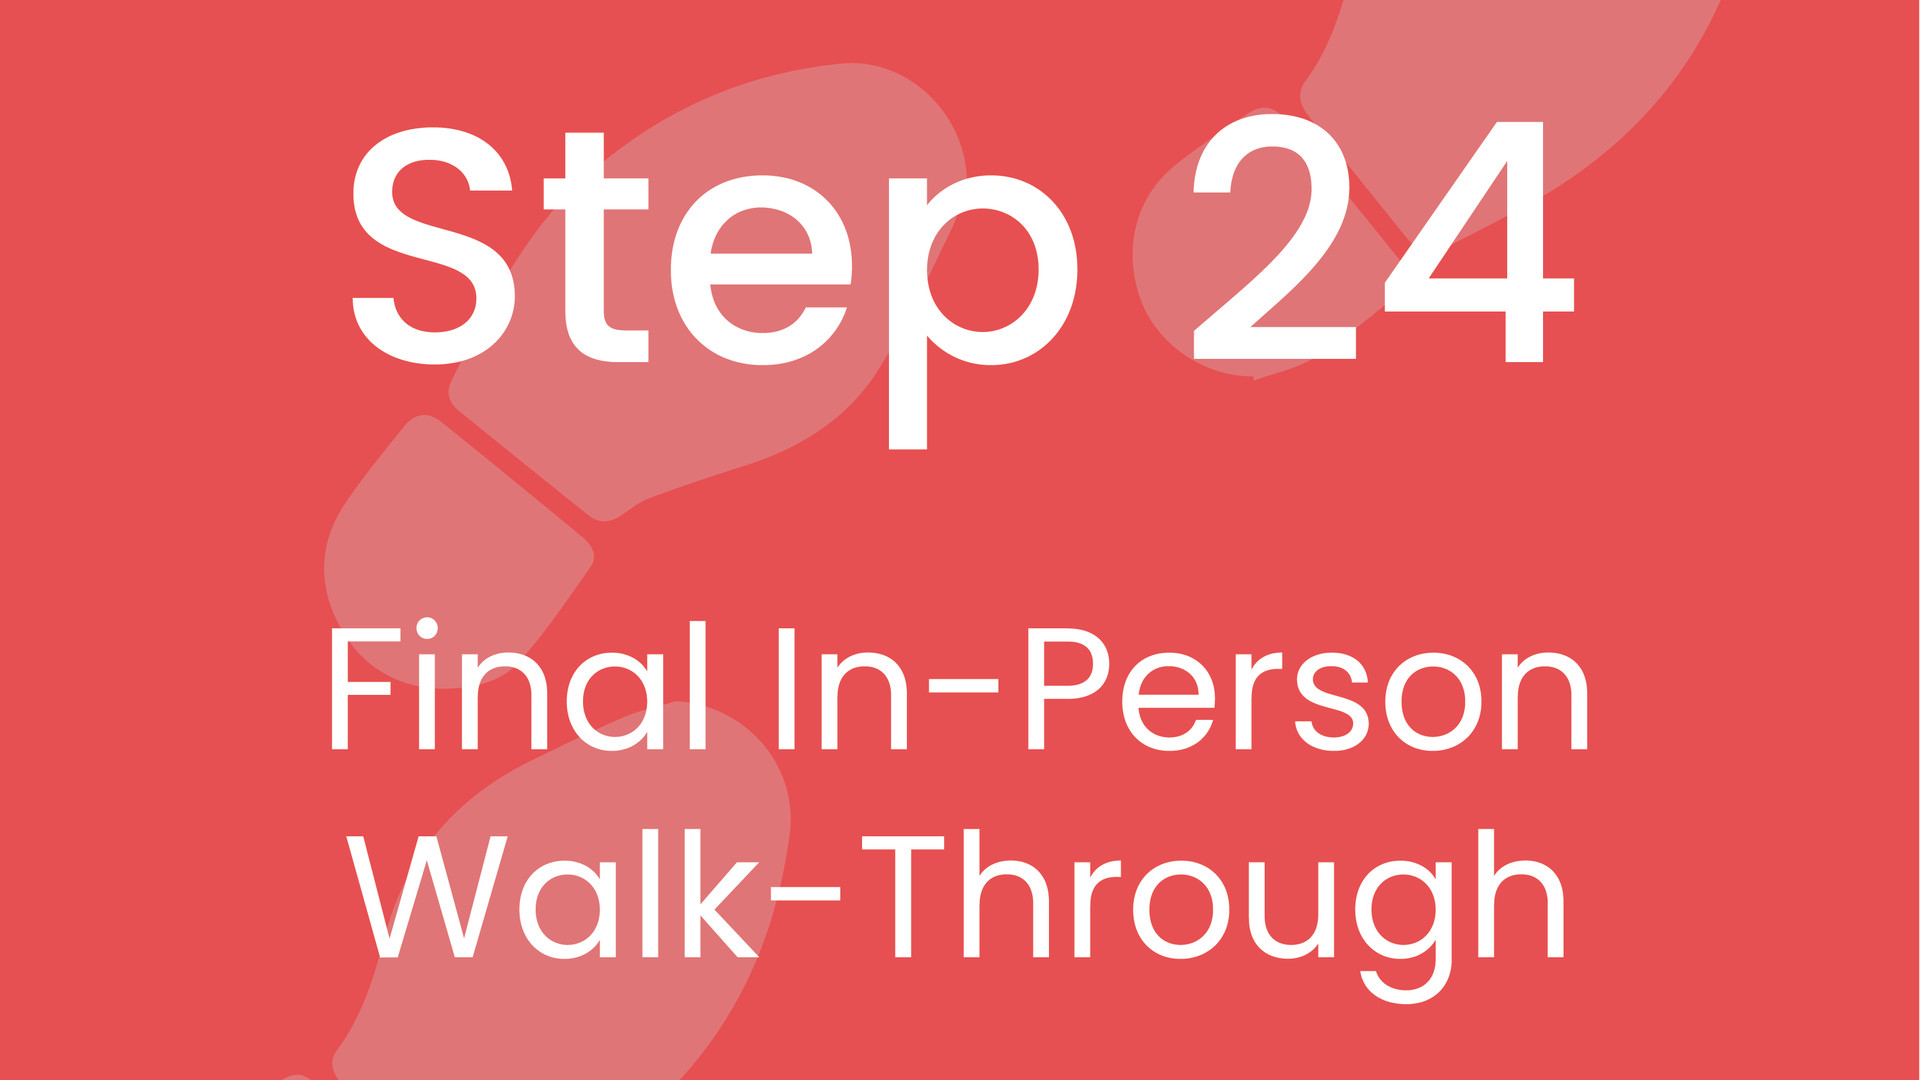 Step 24: Final In-Person Walk-Through